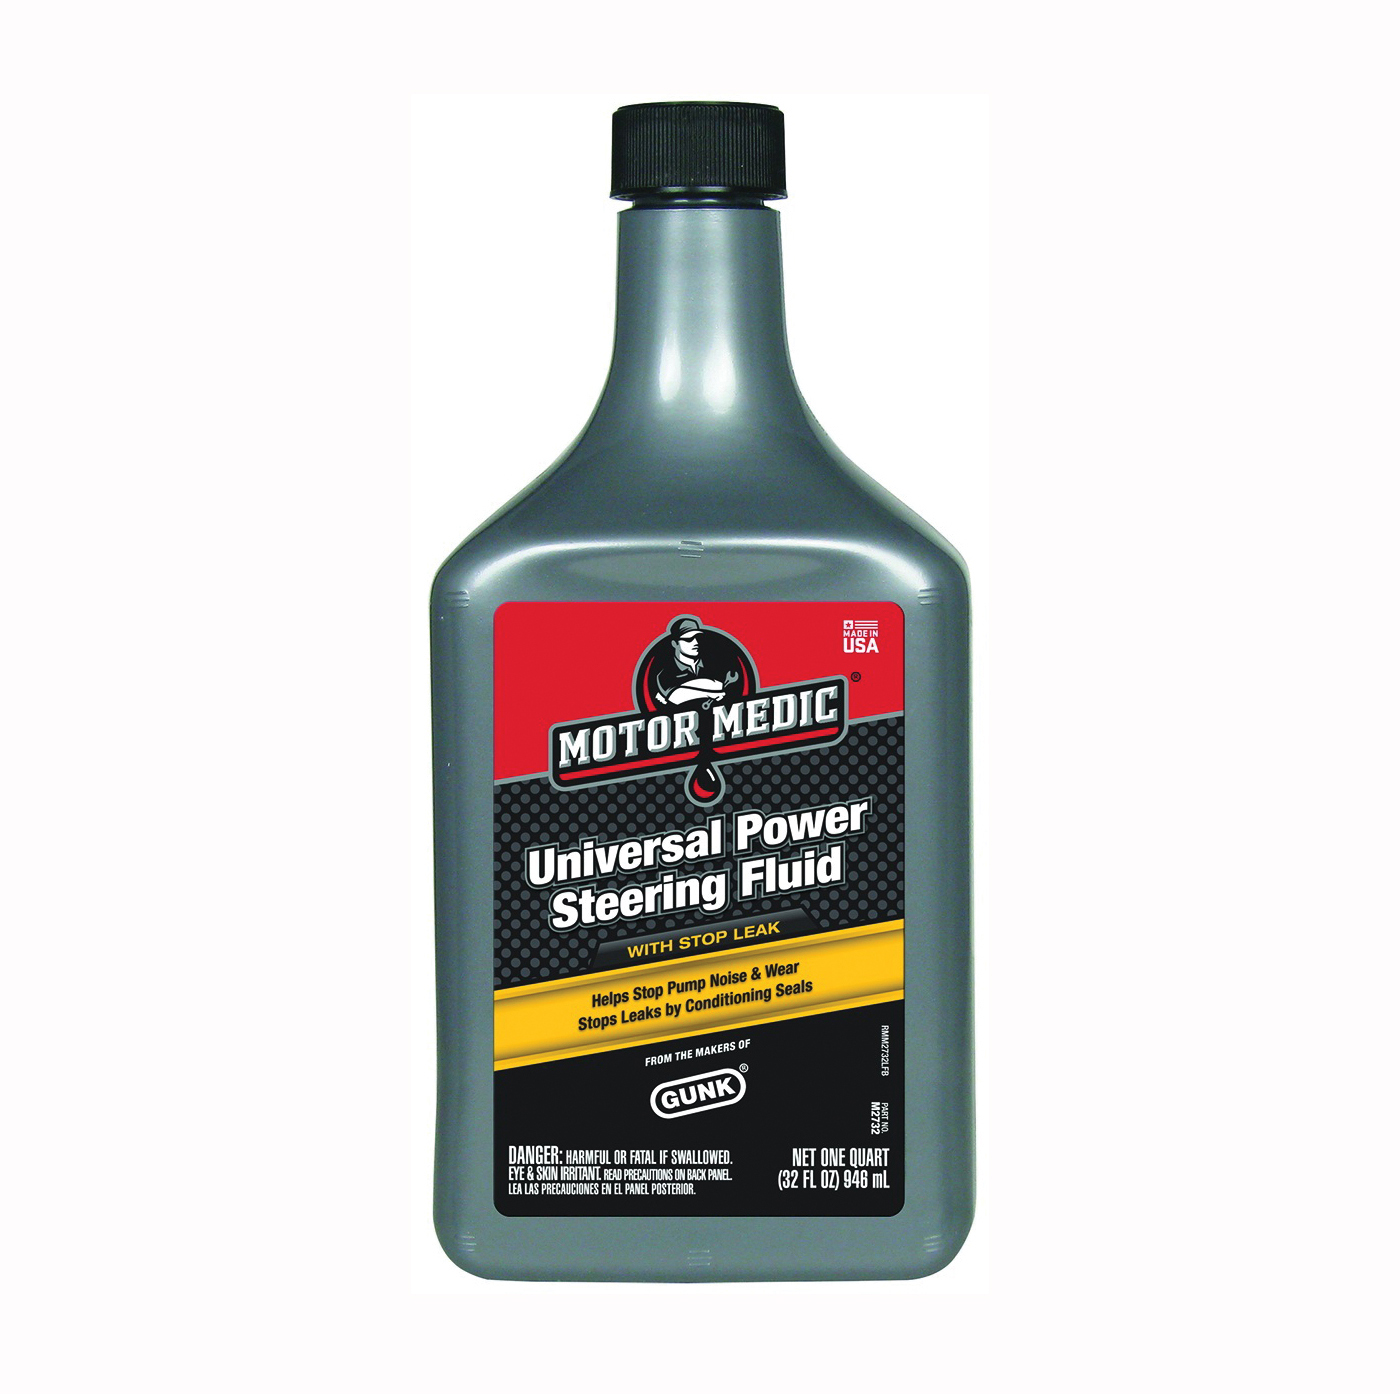 Picture of RSC M2732 Power Steering Fluid with Stop Leak Yellow, 32 oz Package, Bottle